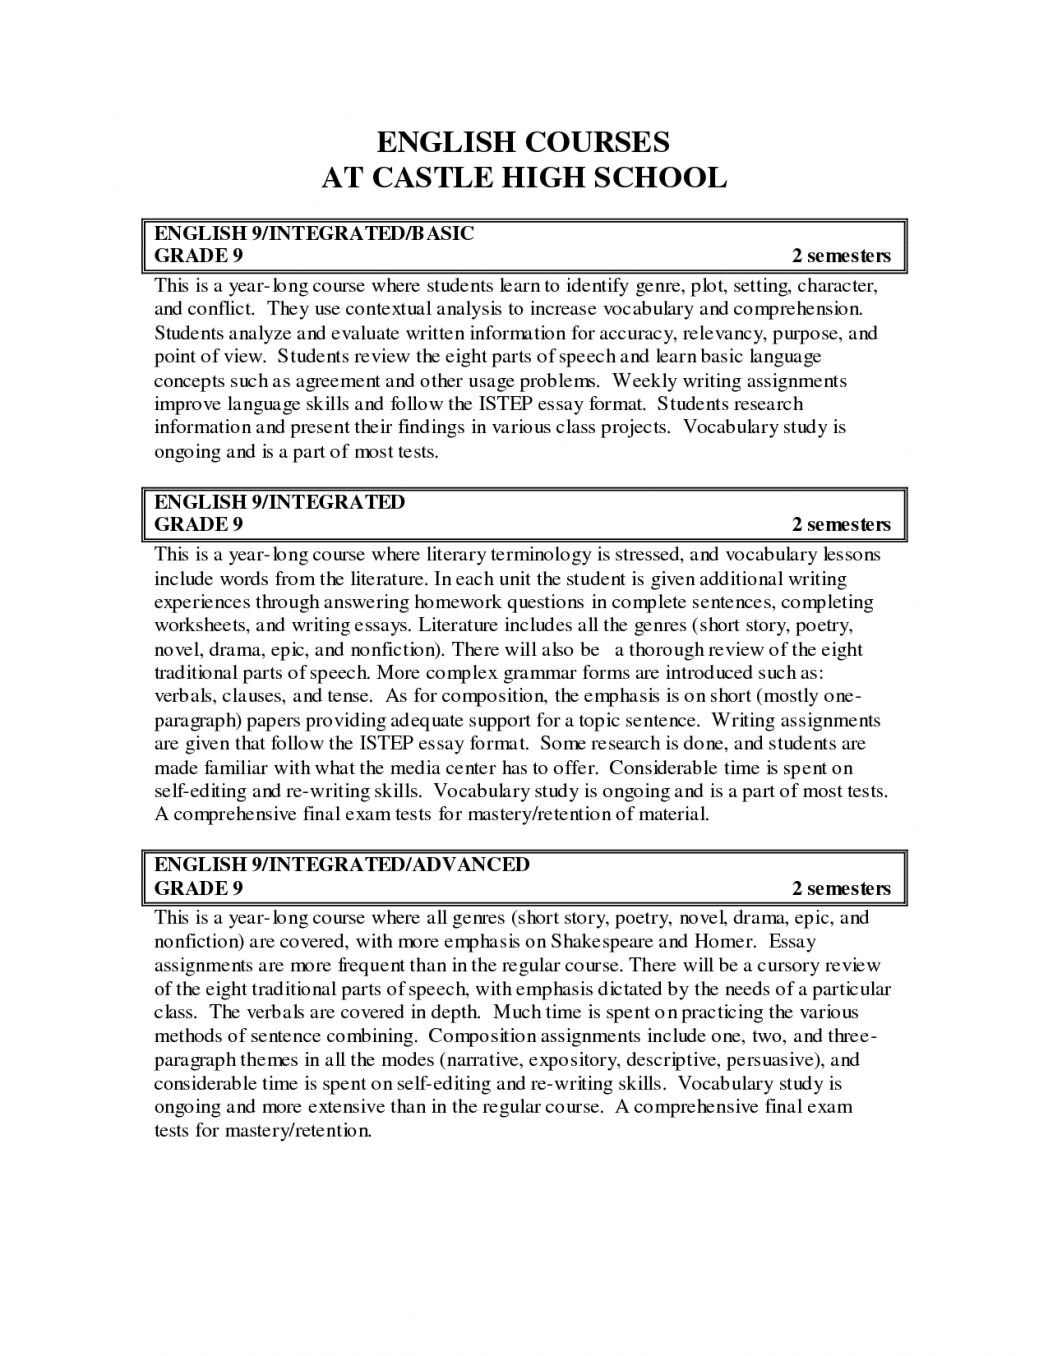 017 Example Of Formal Essay Writing Goal Blockety Co Introduction Format 3 Topic Examples Free With Author Paragraph Short About Friendship For High School Pdf Fearsome College Letter Spm Academic Full